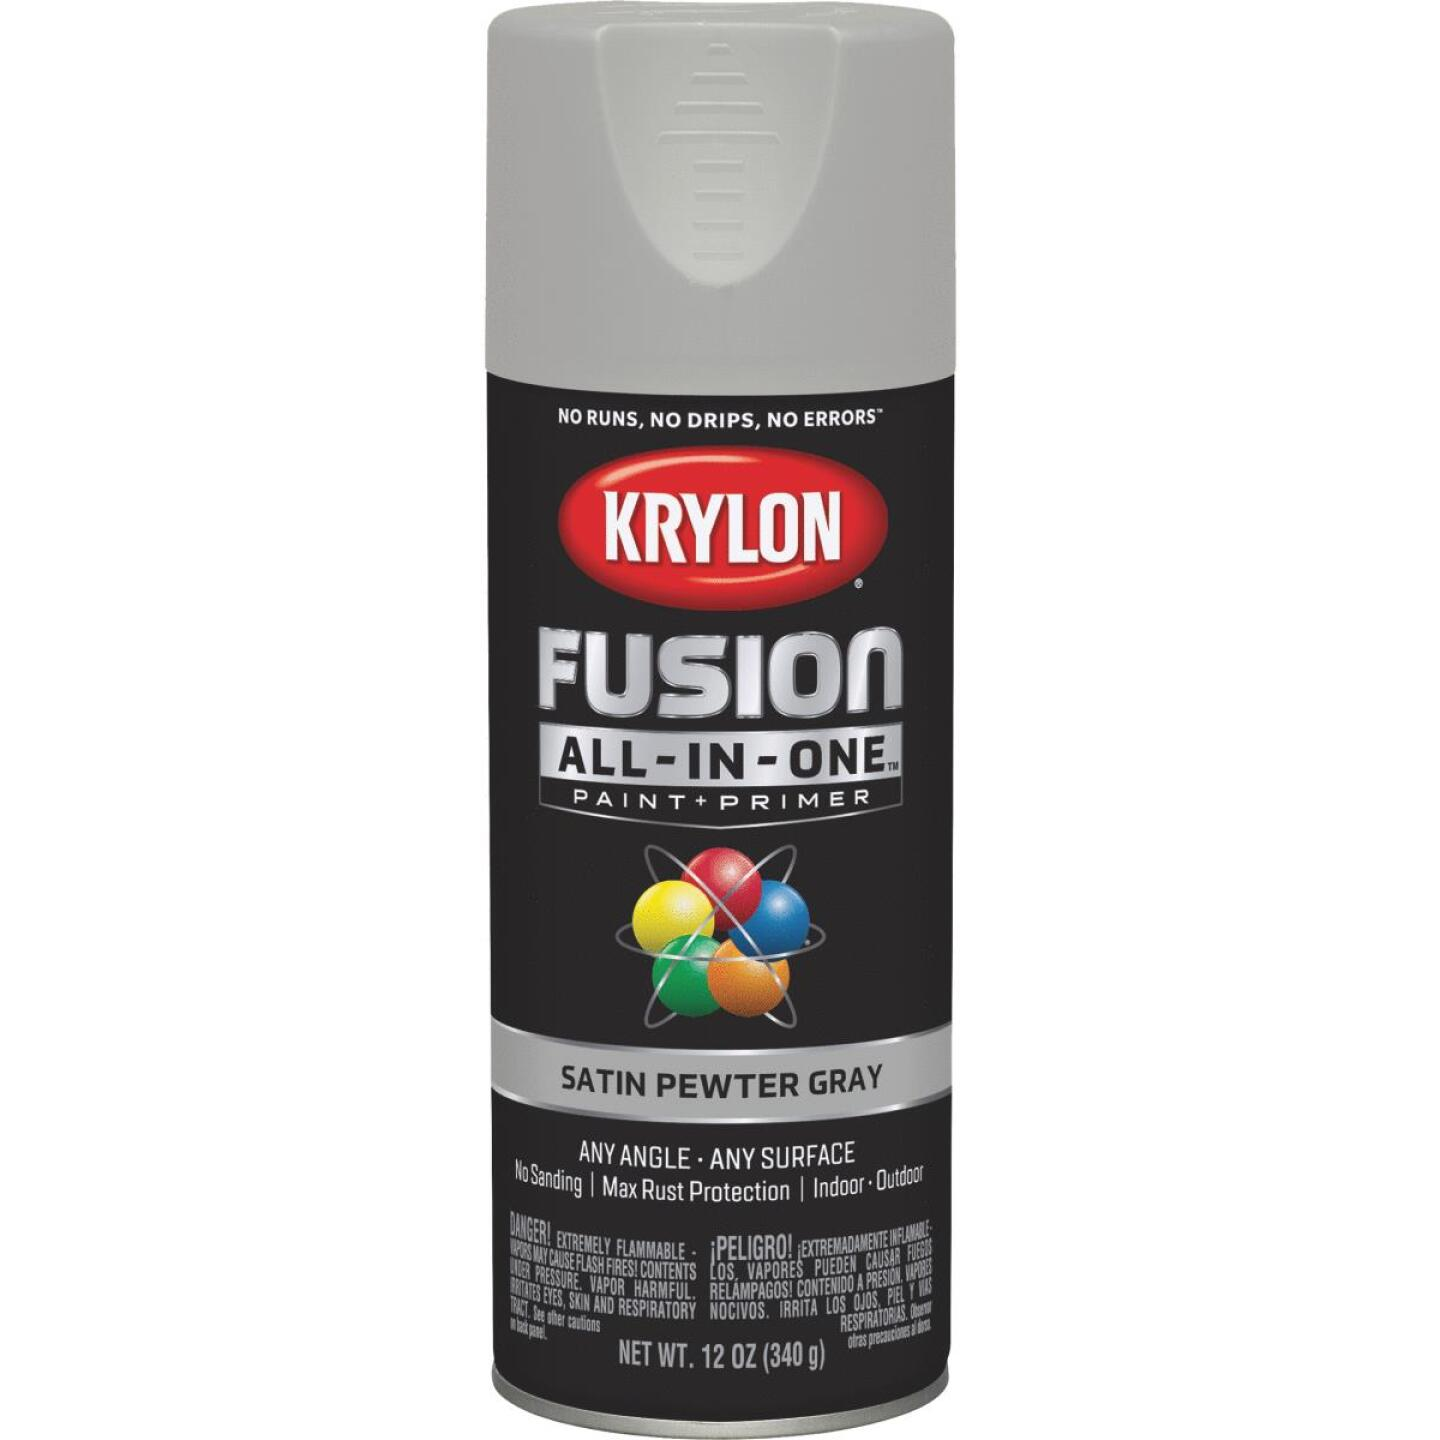 Krylon Fusion All-In-One Satin Spray Paint & Primer, Pewter Gray Image 1